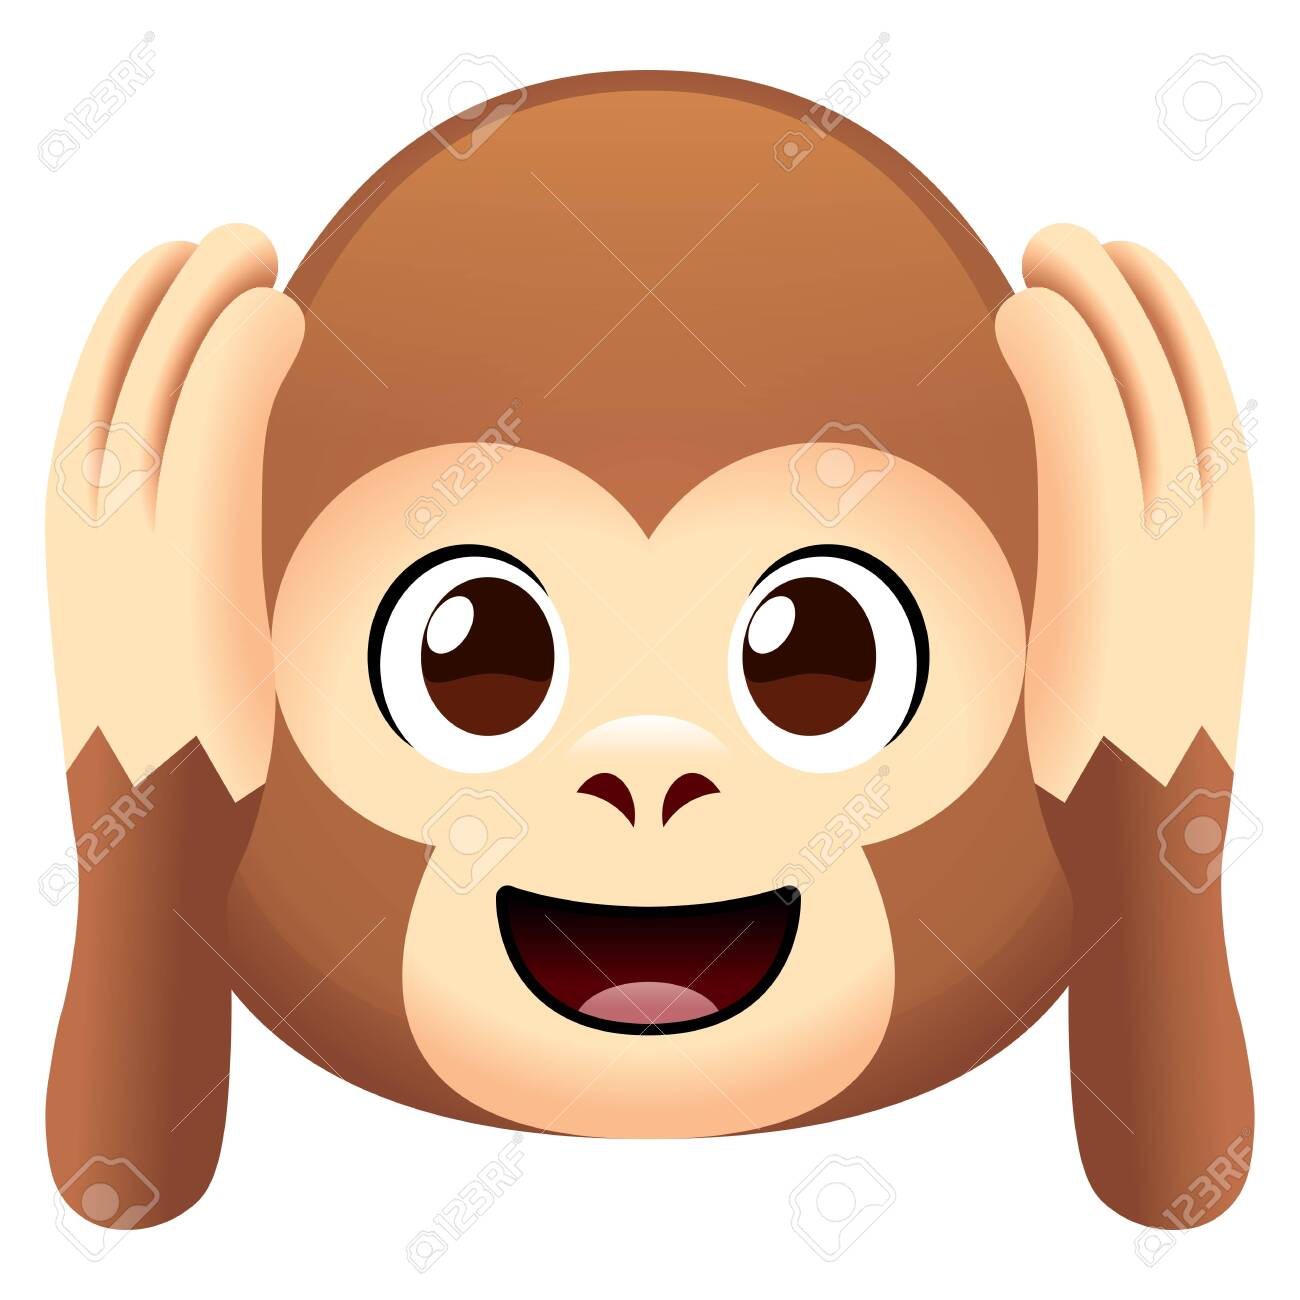 Cartoon Cute Monkey Face Isolated On White Background Royalty Free Cliparts Vectors And Stock Illustration Image 120899096